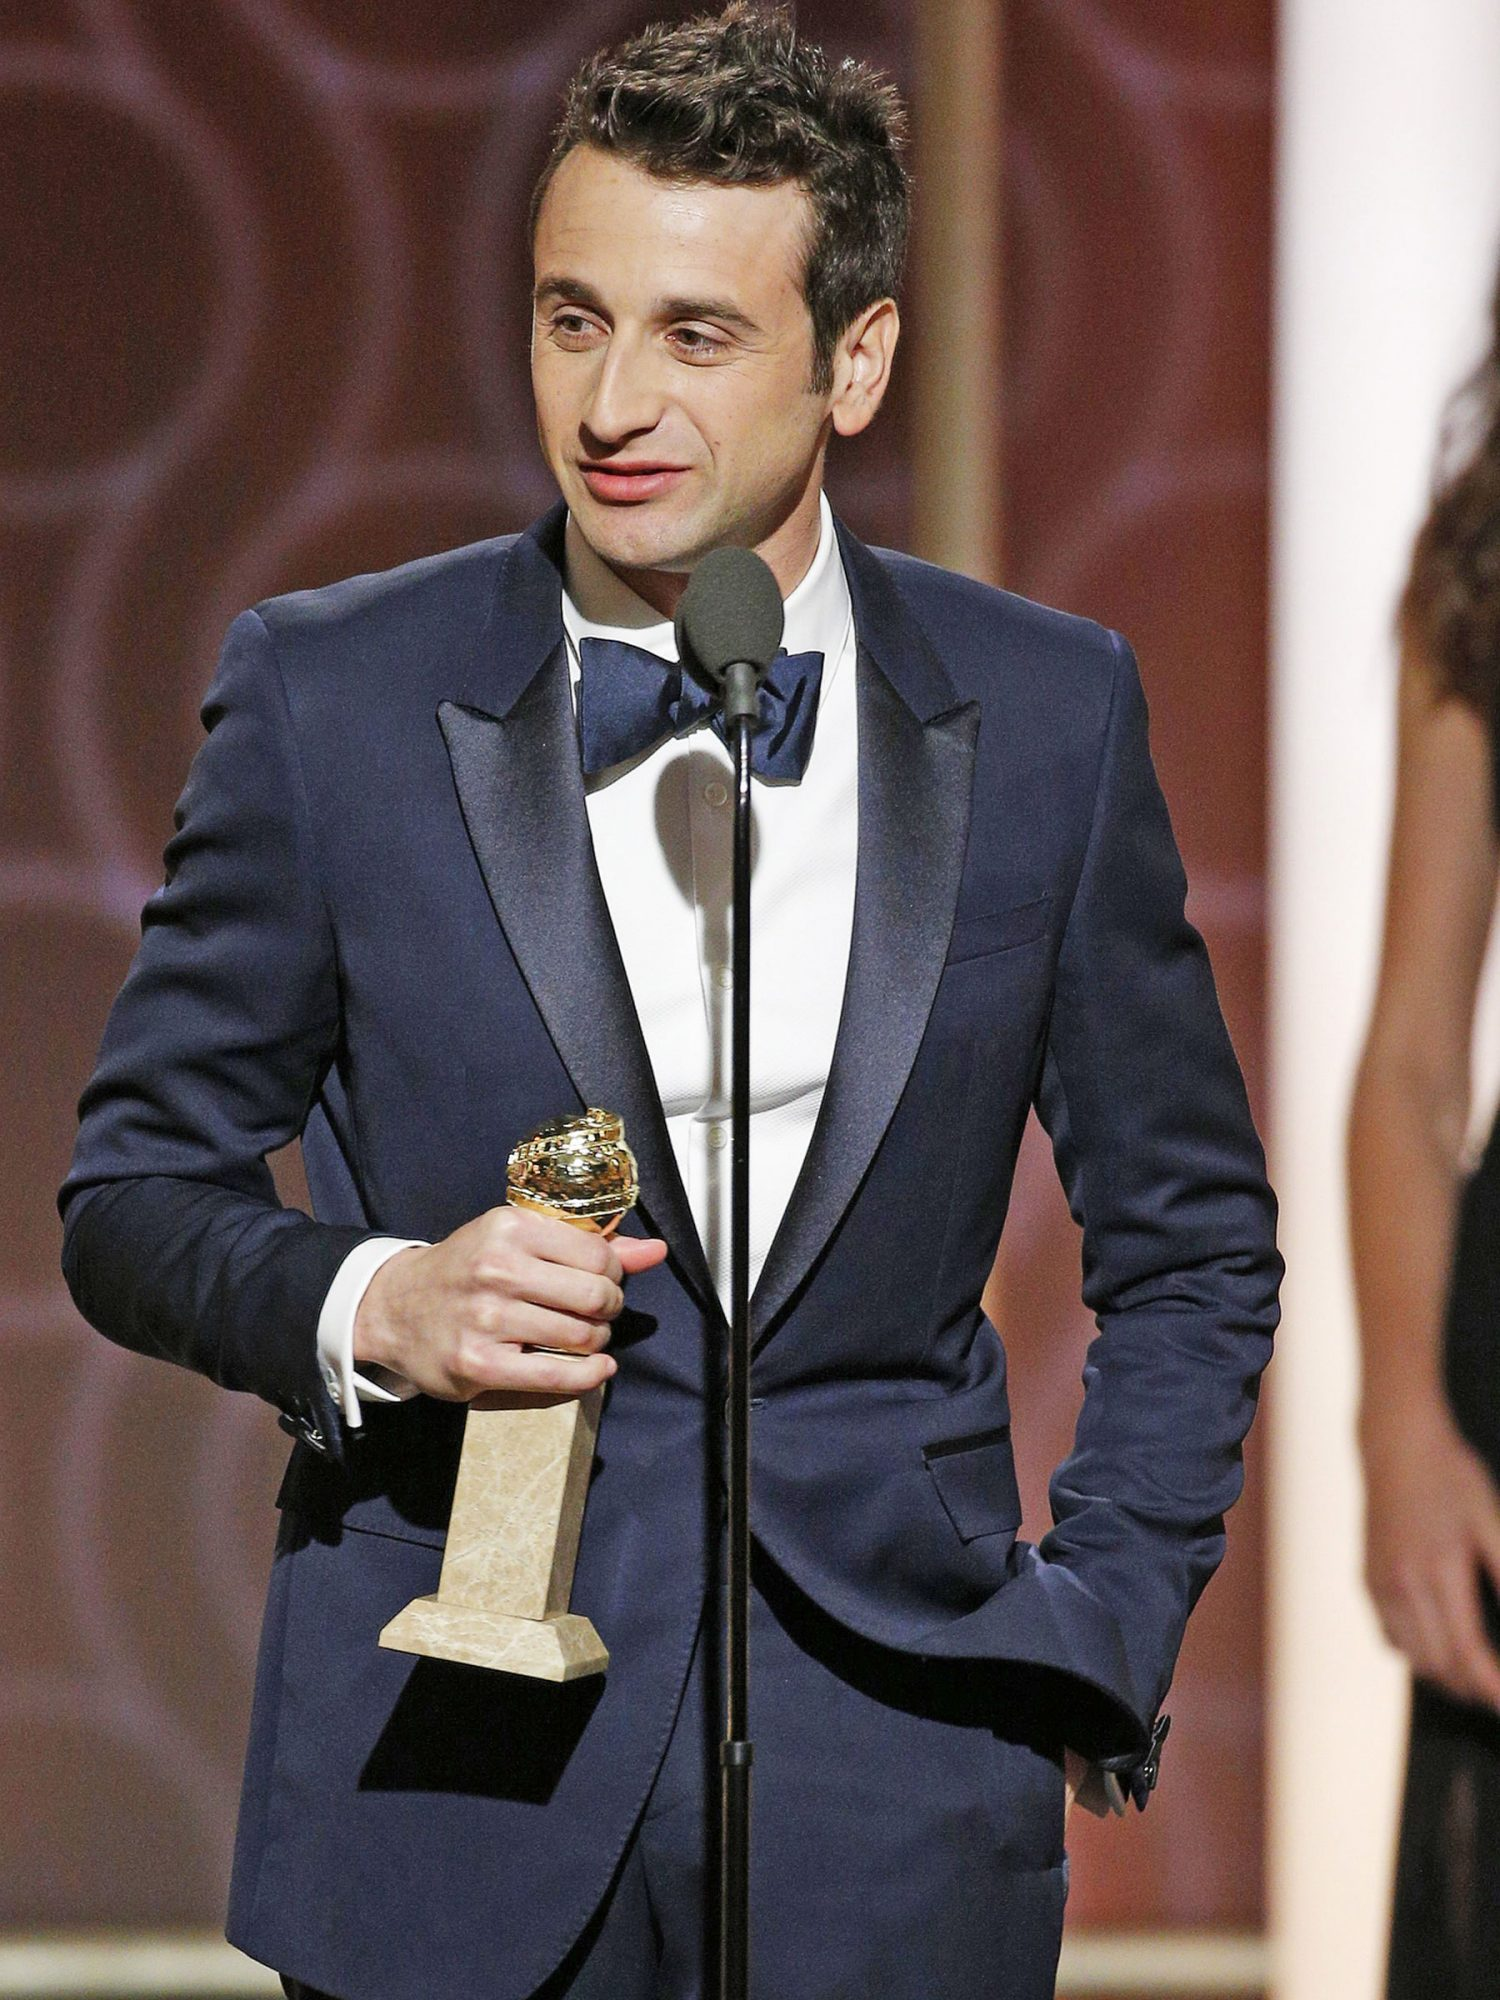 74th Annual Golden Globe Awards - Show